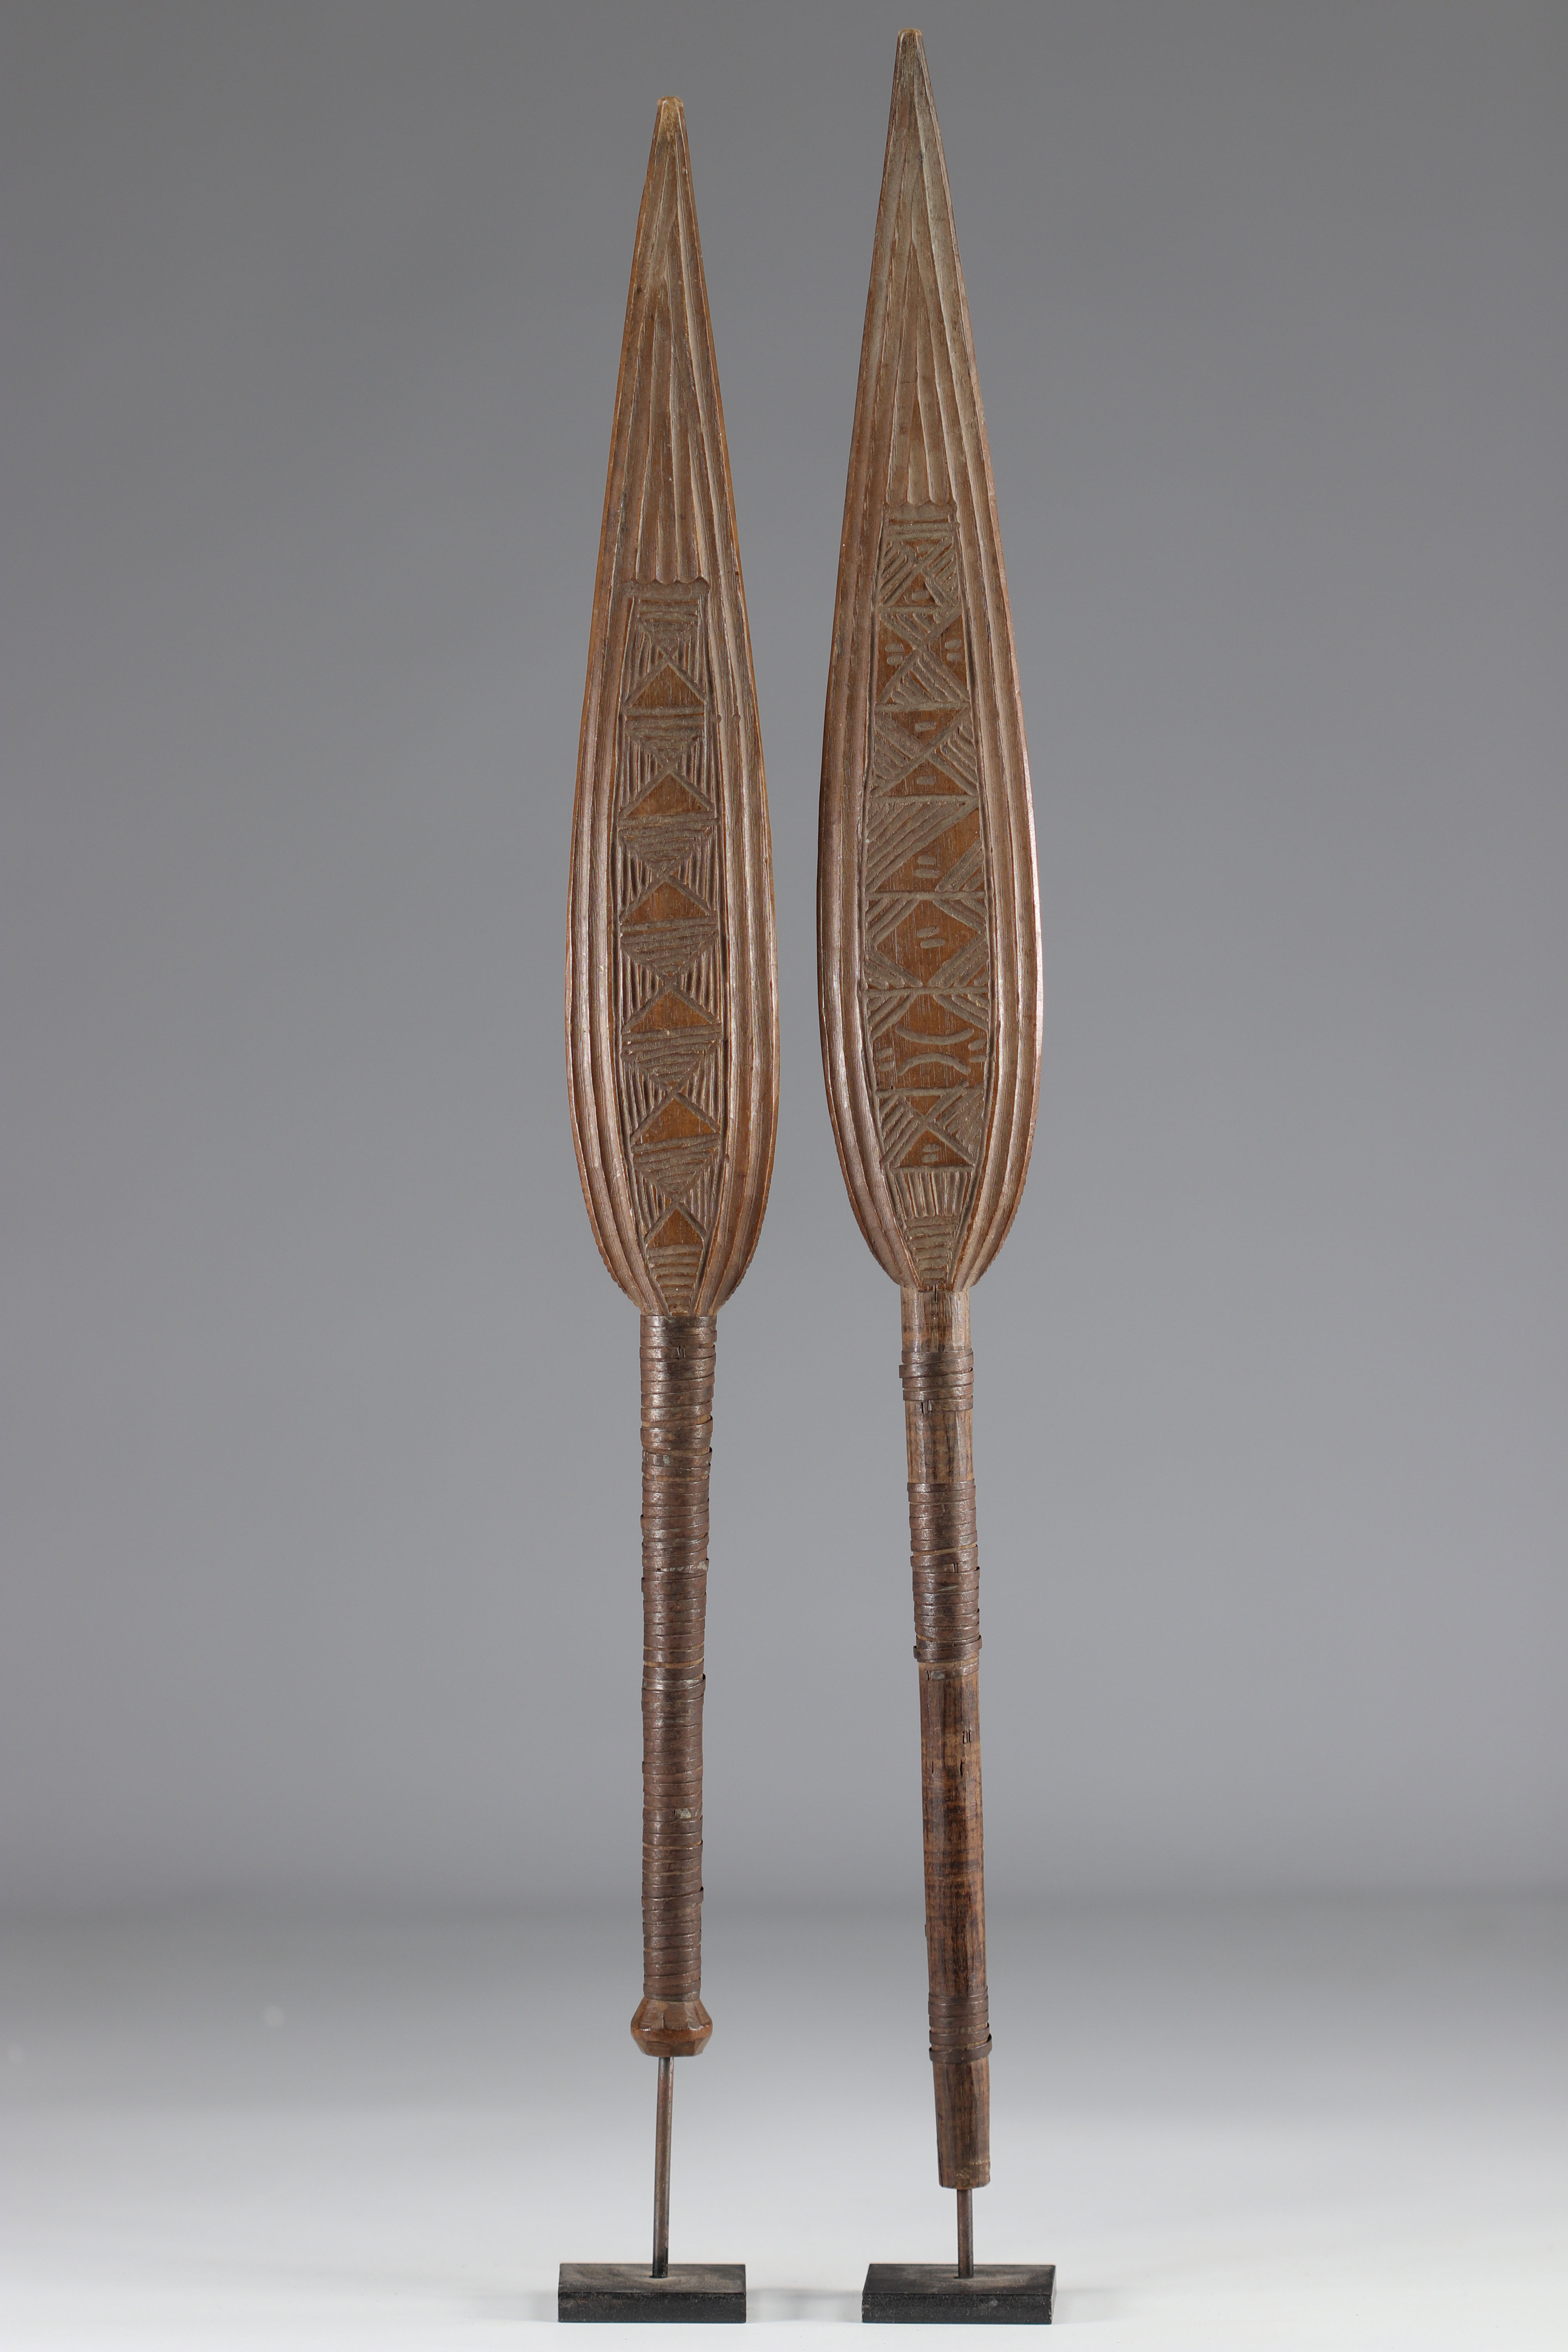 Pair of dance paddles - early 20th century - DRC - Africa - Image 2 of 2